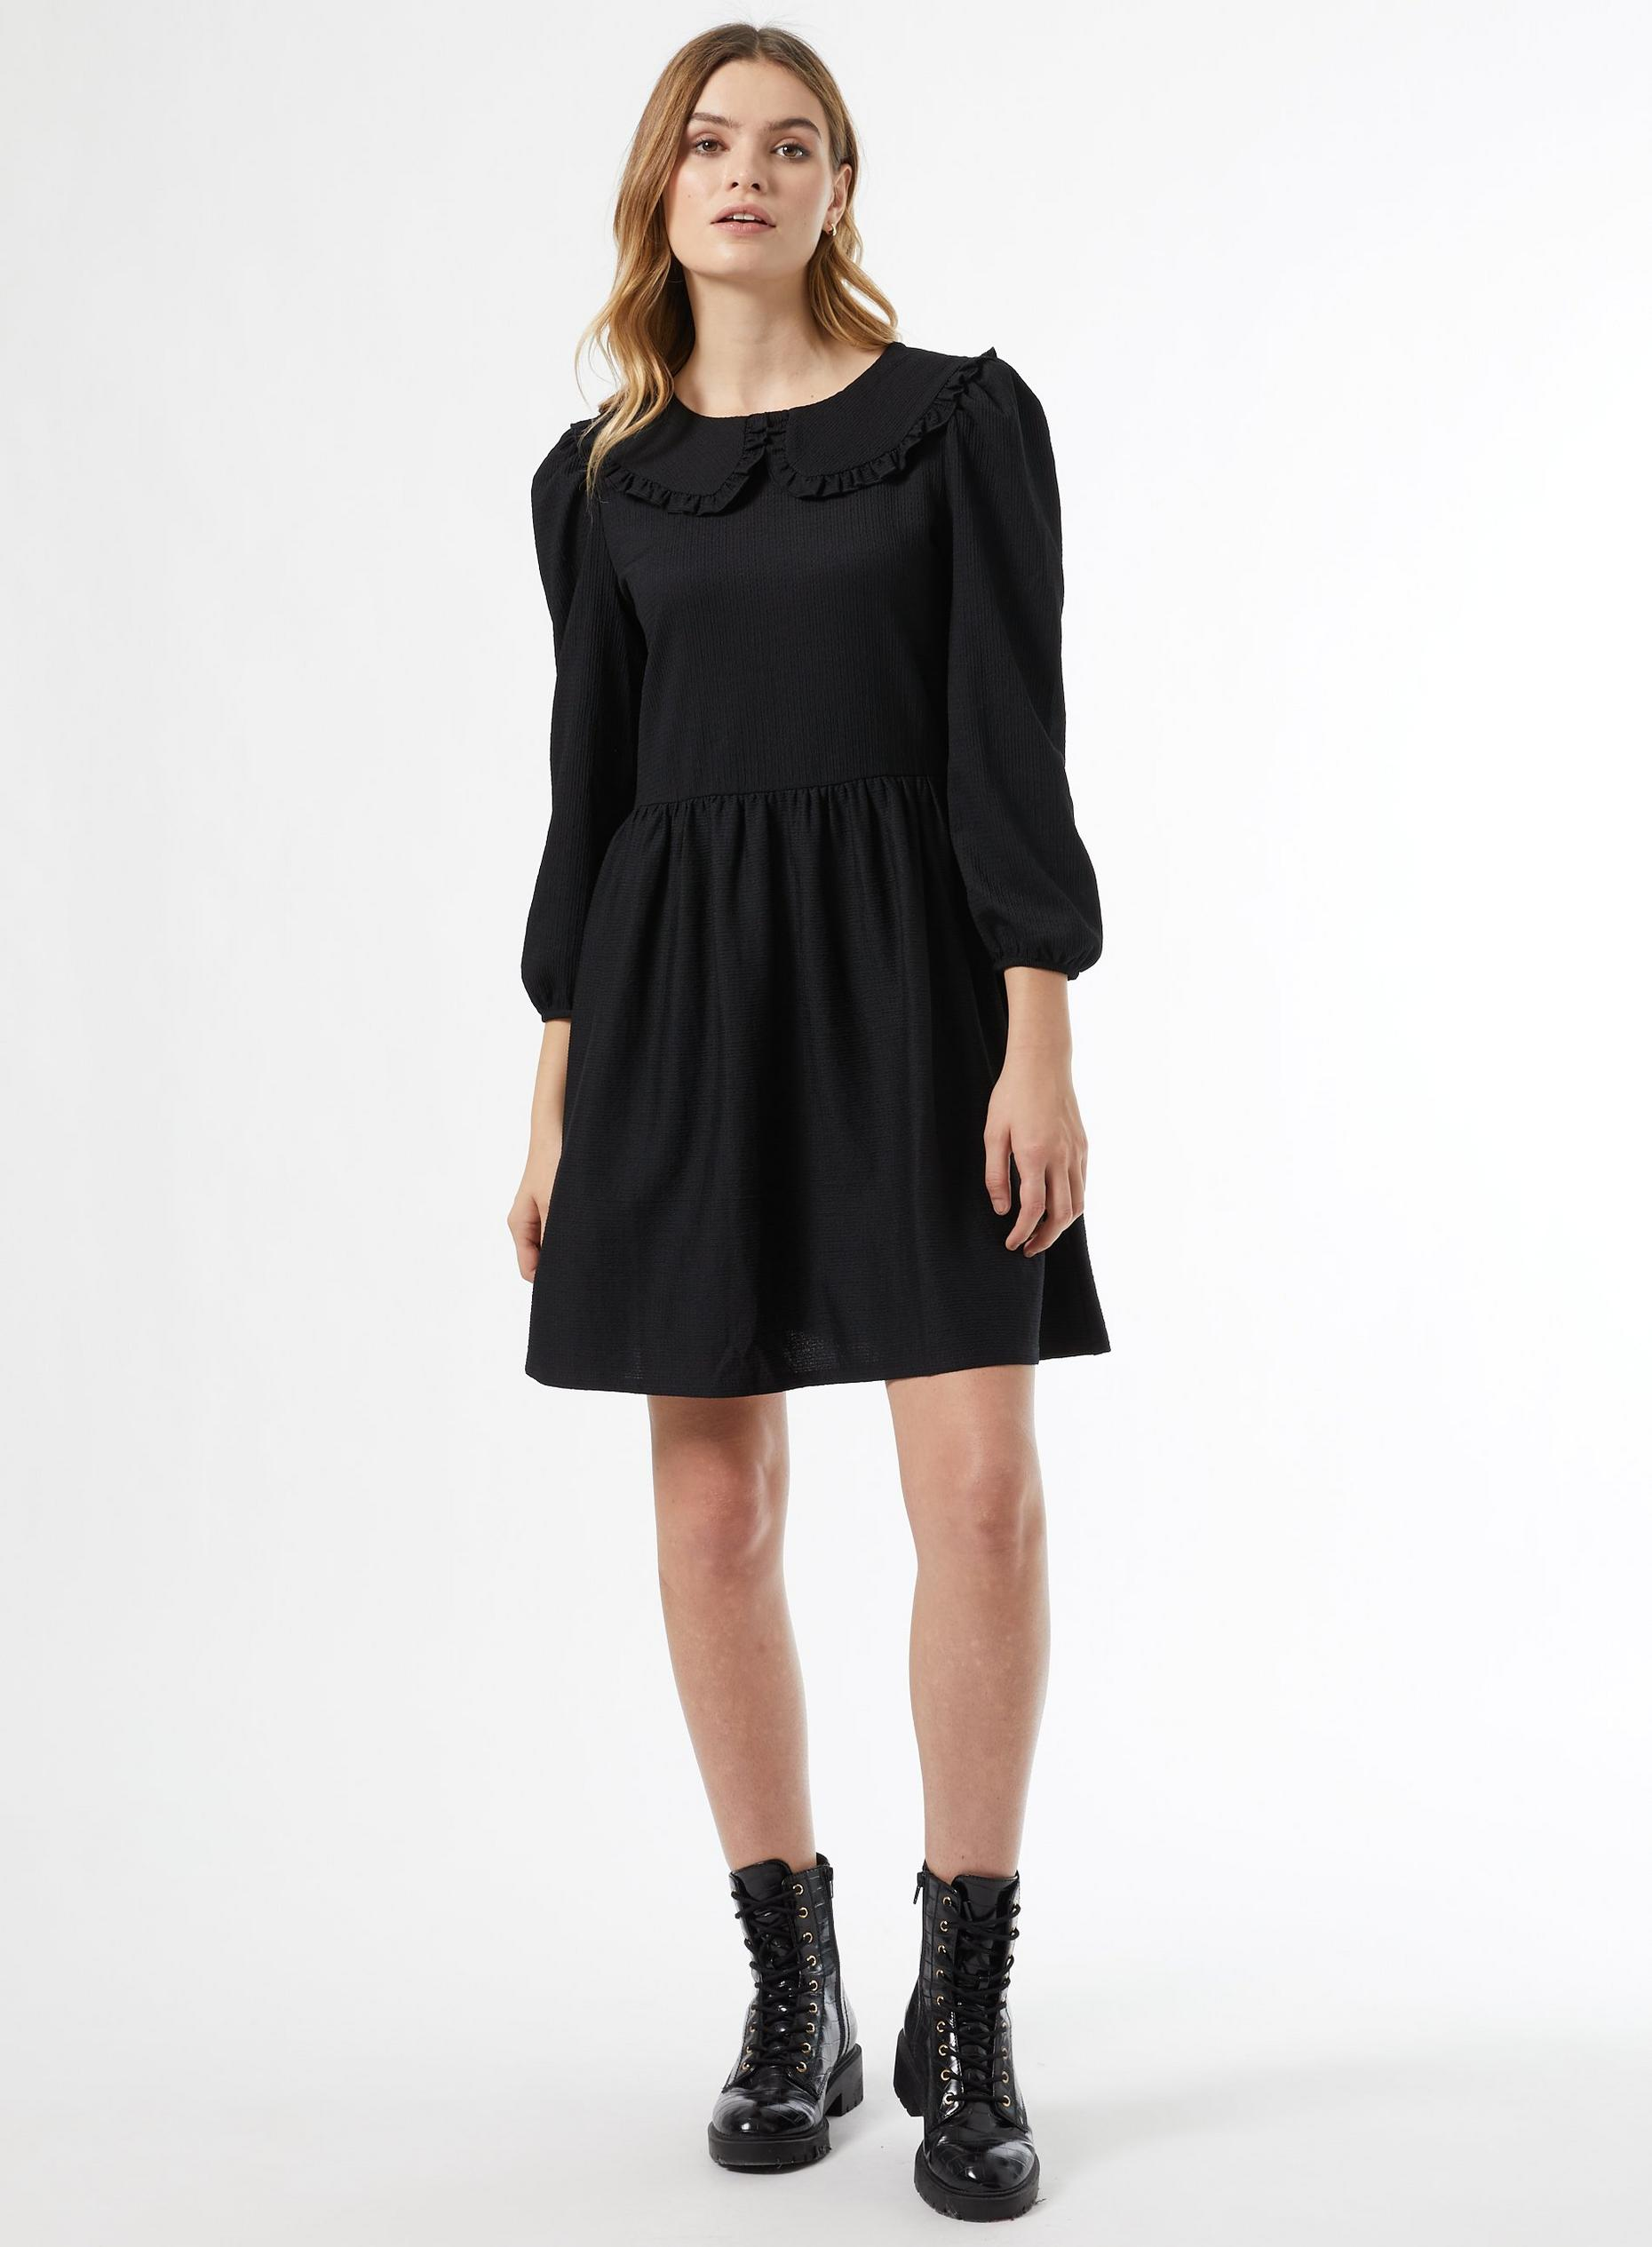 Black Collar Fit and Flare Dress